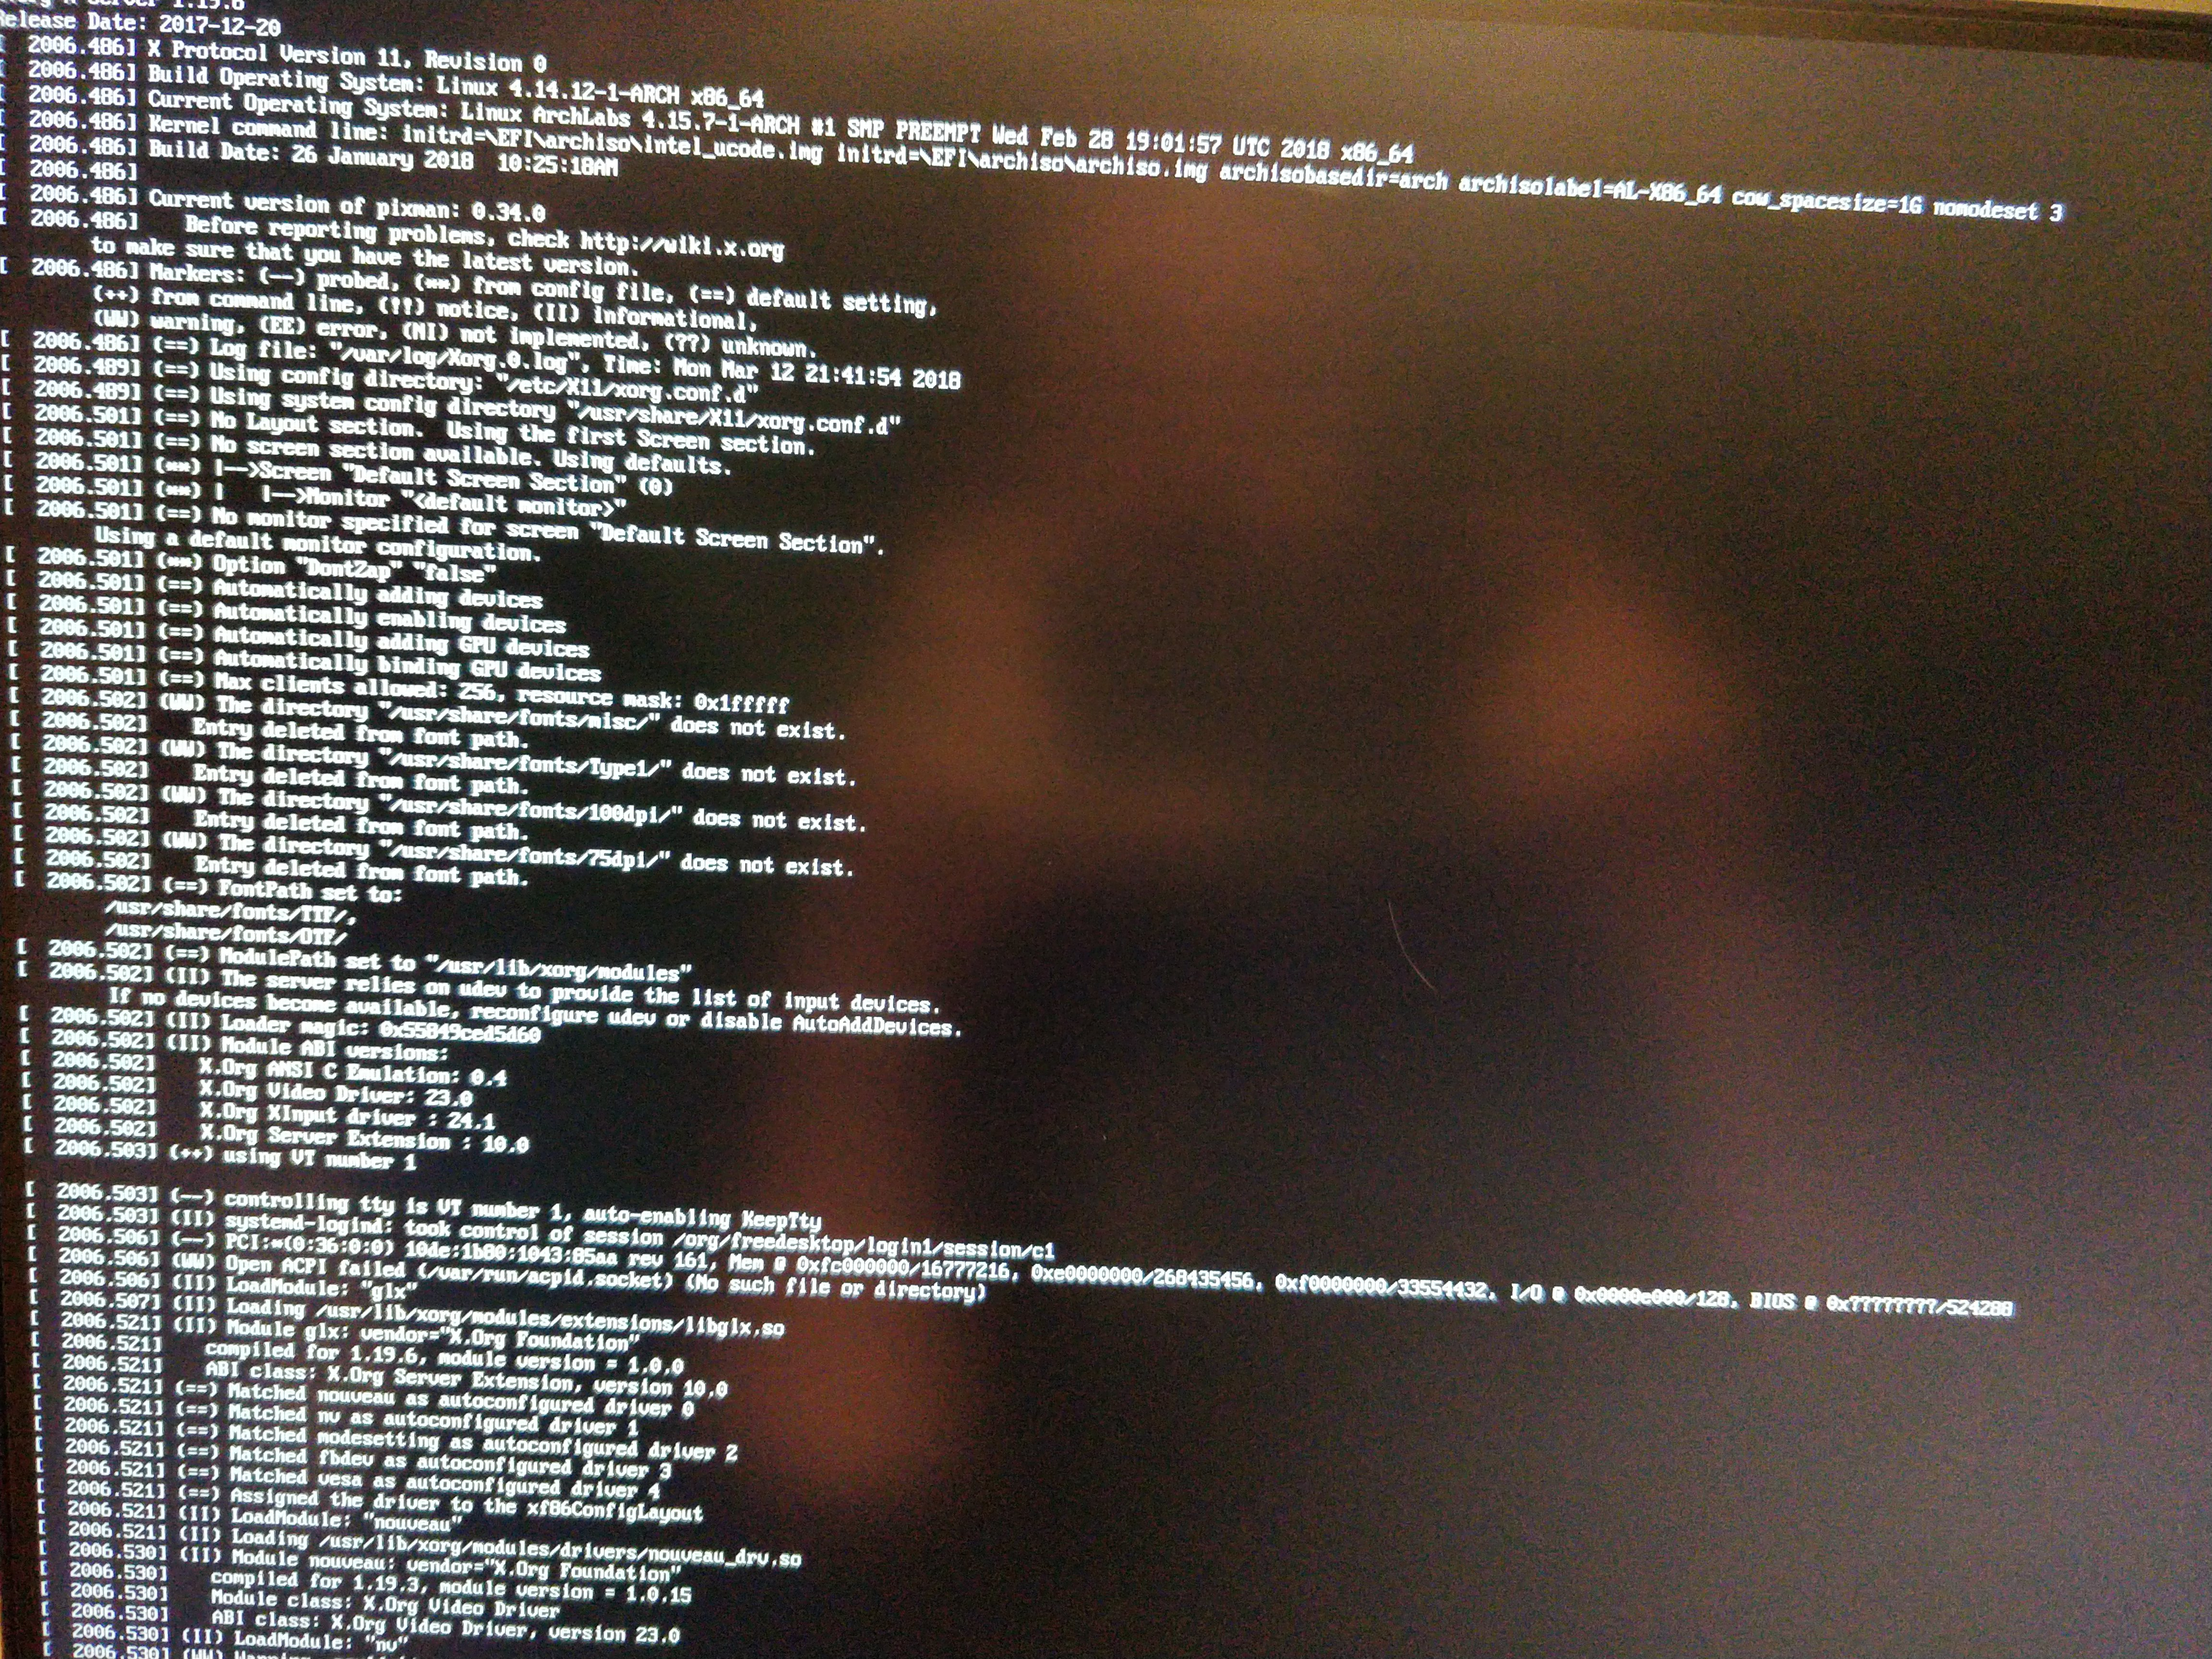 Cannot Get To Installer With Nvidia GPU - Technical Issues